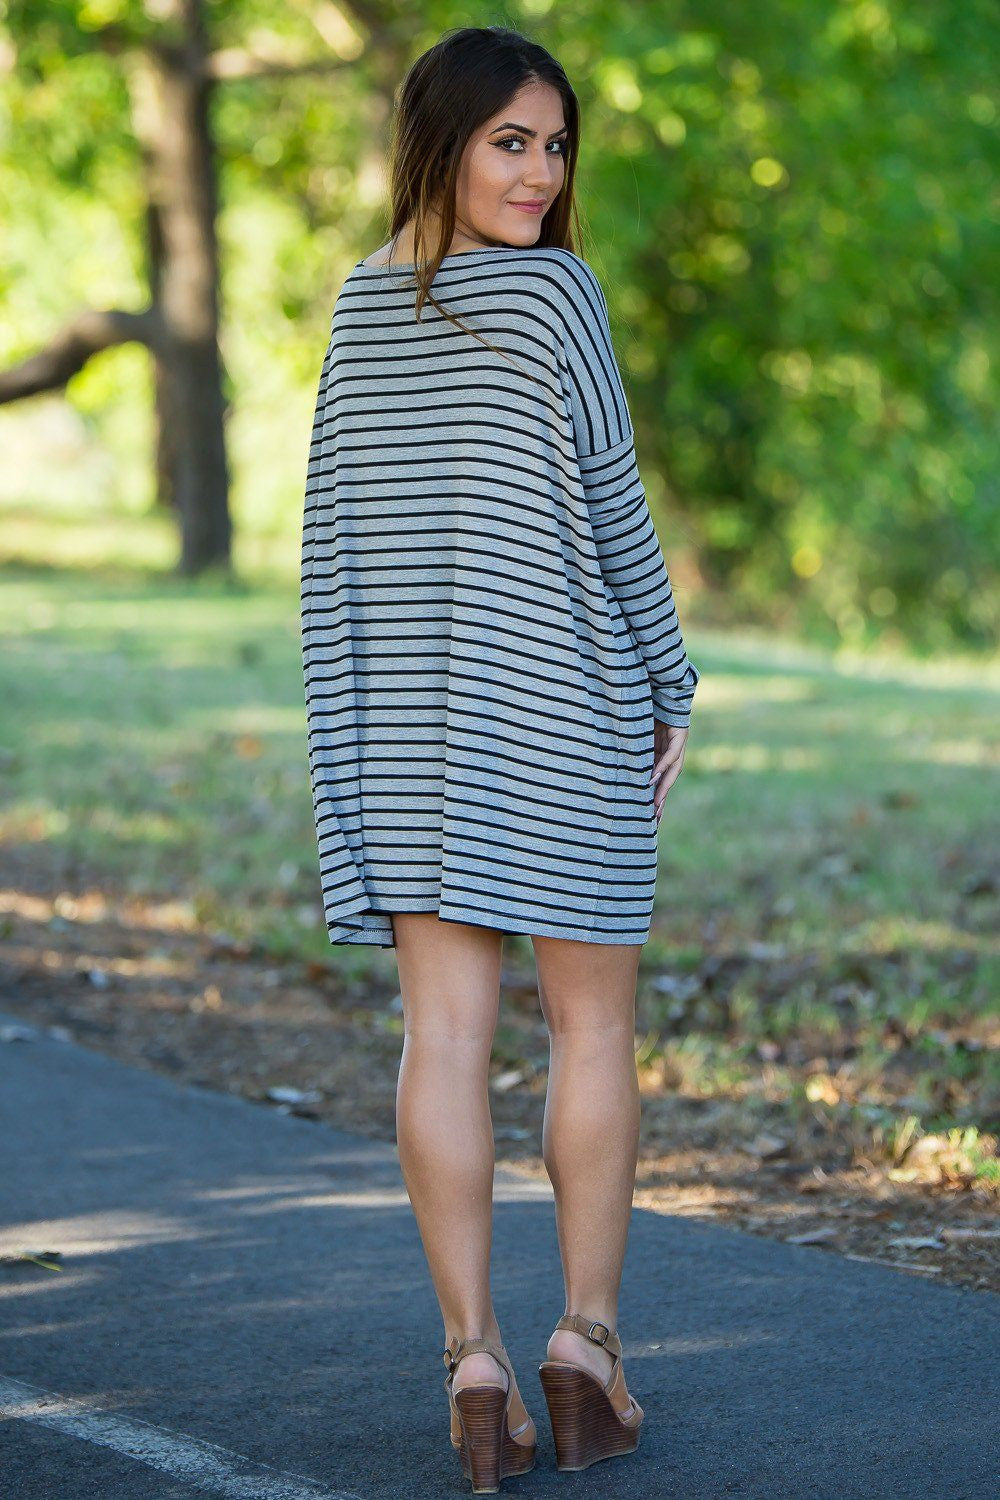 Long Sleeve Tiny Stripe Piko Tunic - Heather/Black - Piko Clothing